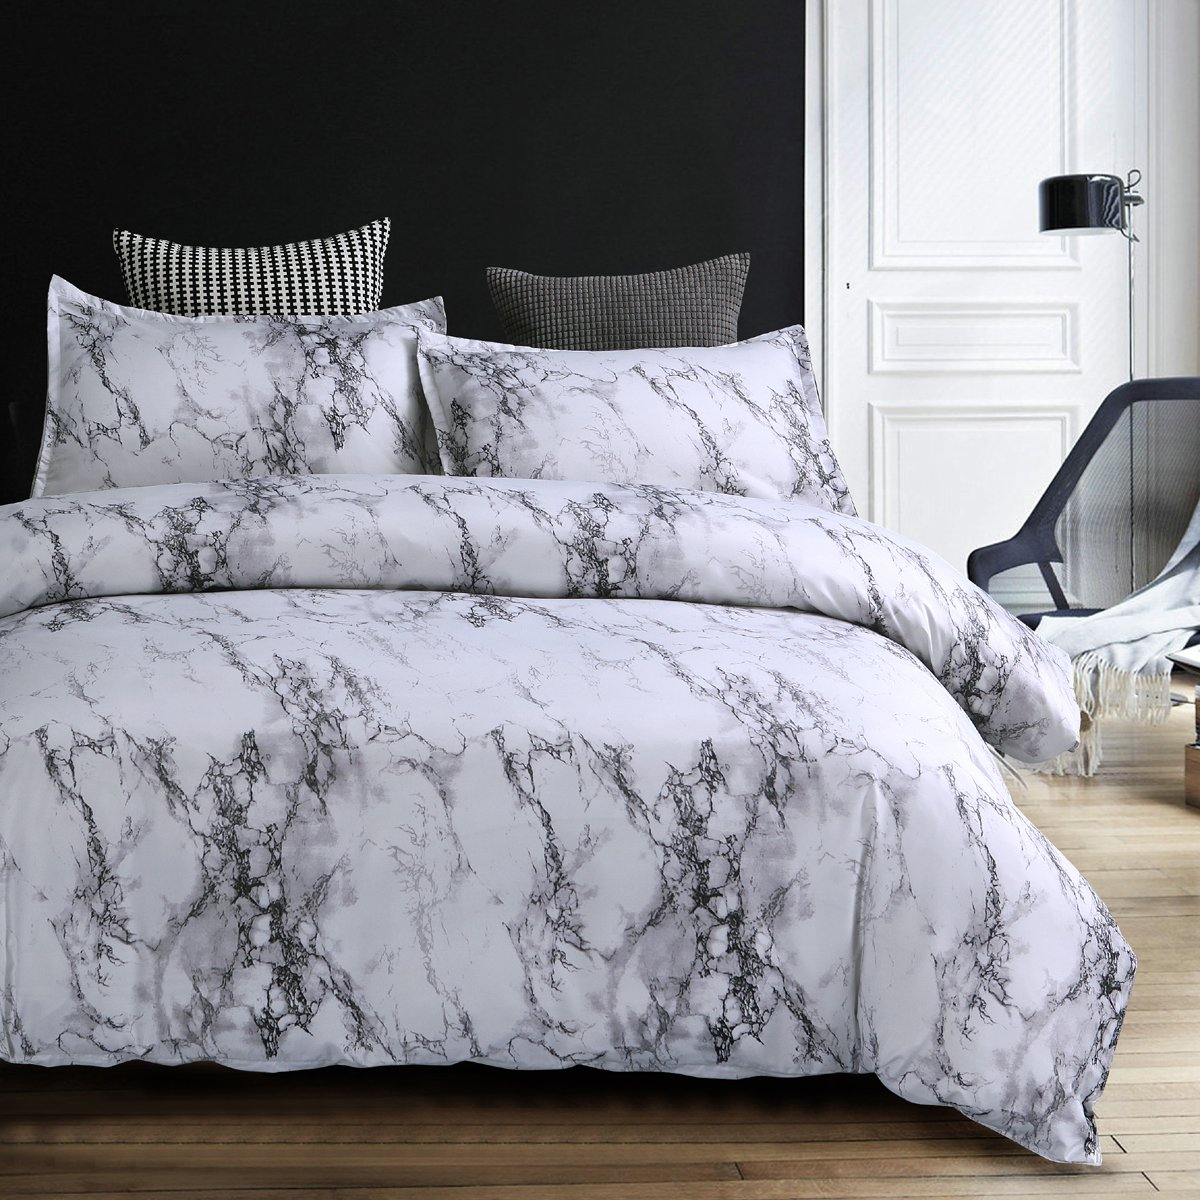 Nattey Duvet Cover Set Marble Bedding Set with Zipper (Full, White Marble)